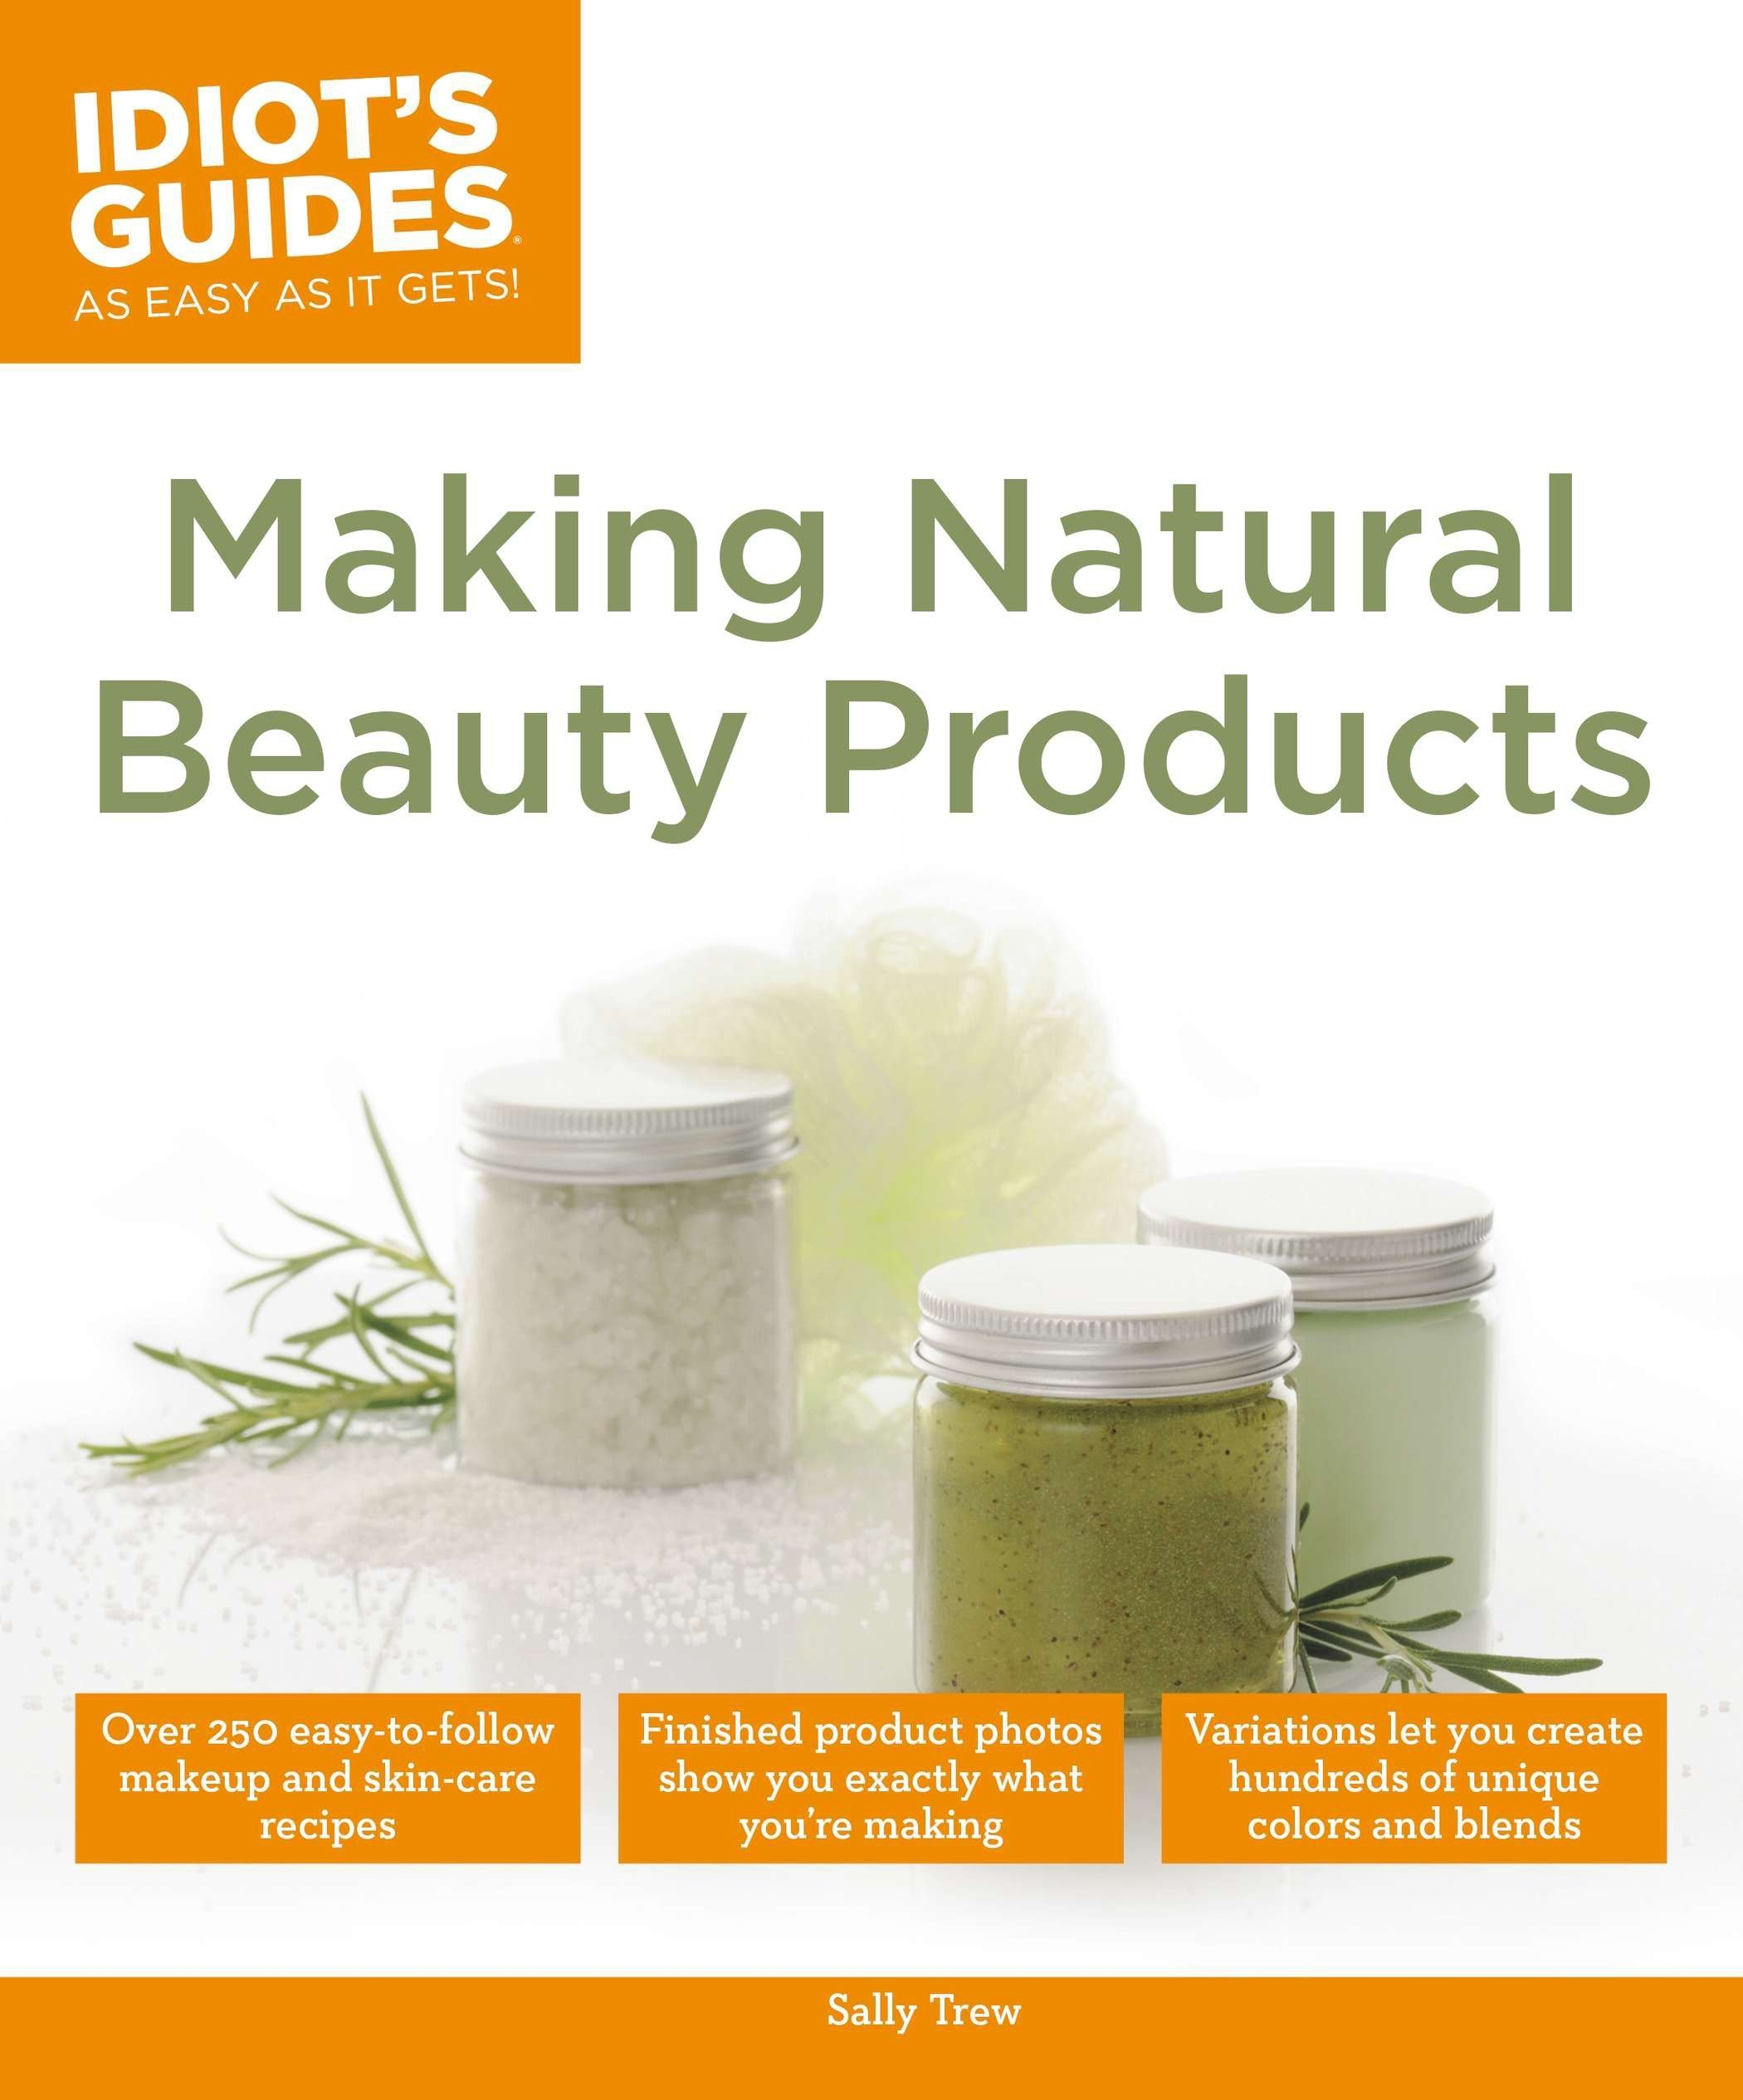 Idiot's Guides: Making Natural Beauty Products: Amazon co uk